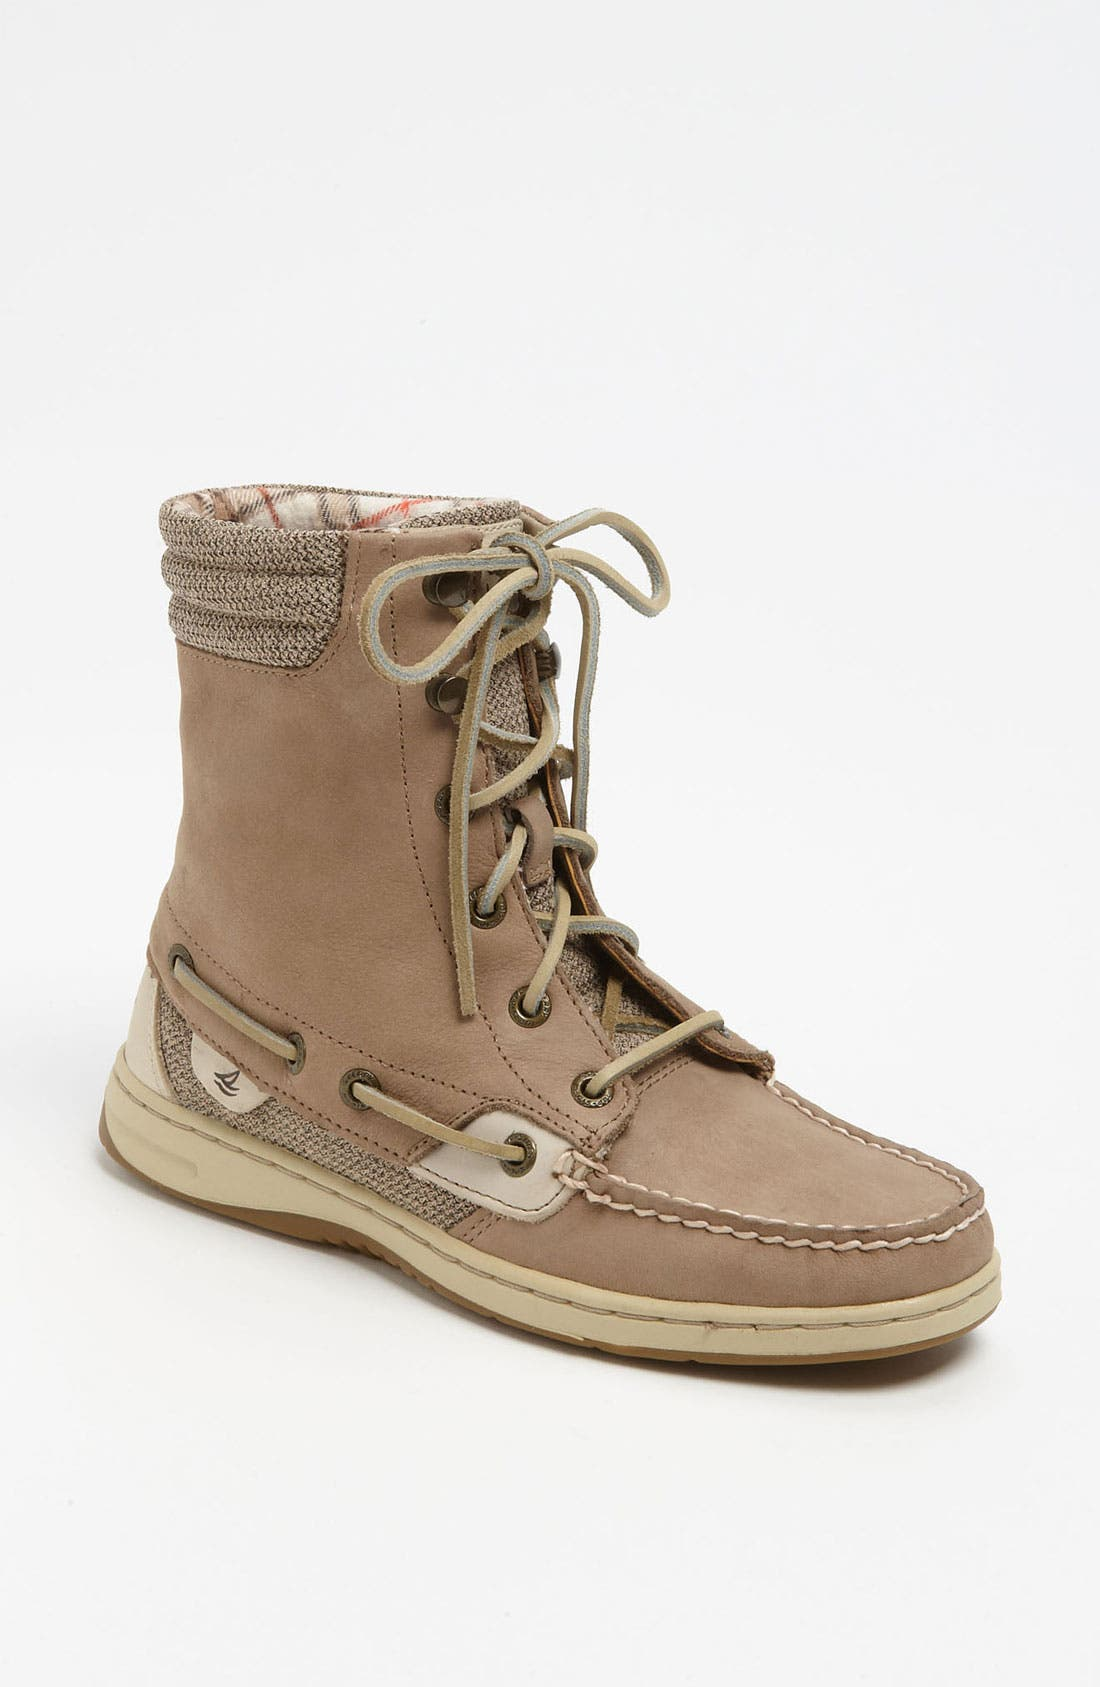 Alternate Image 1 Selected - Sperry Top-Sider® 'Hikerfish' Boot